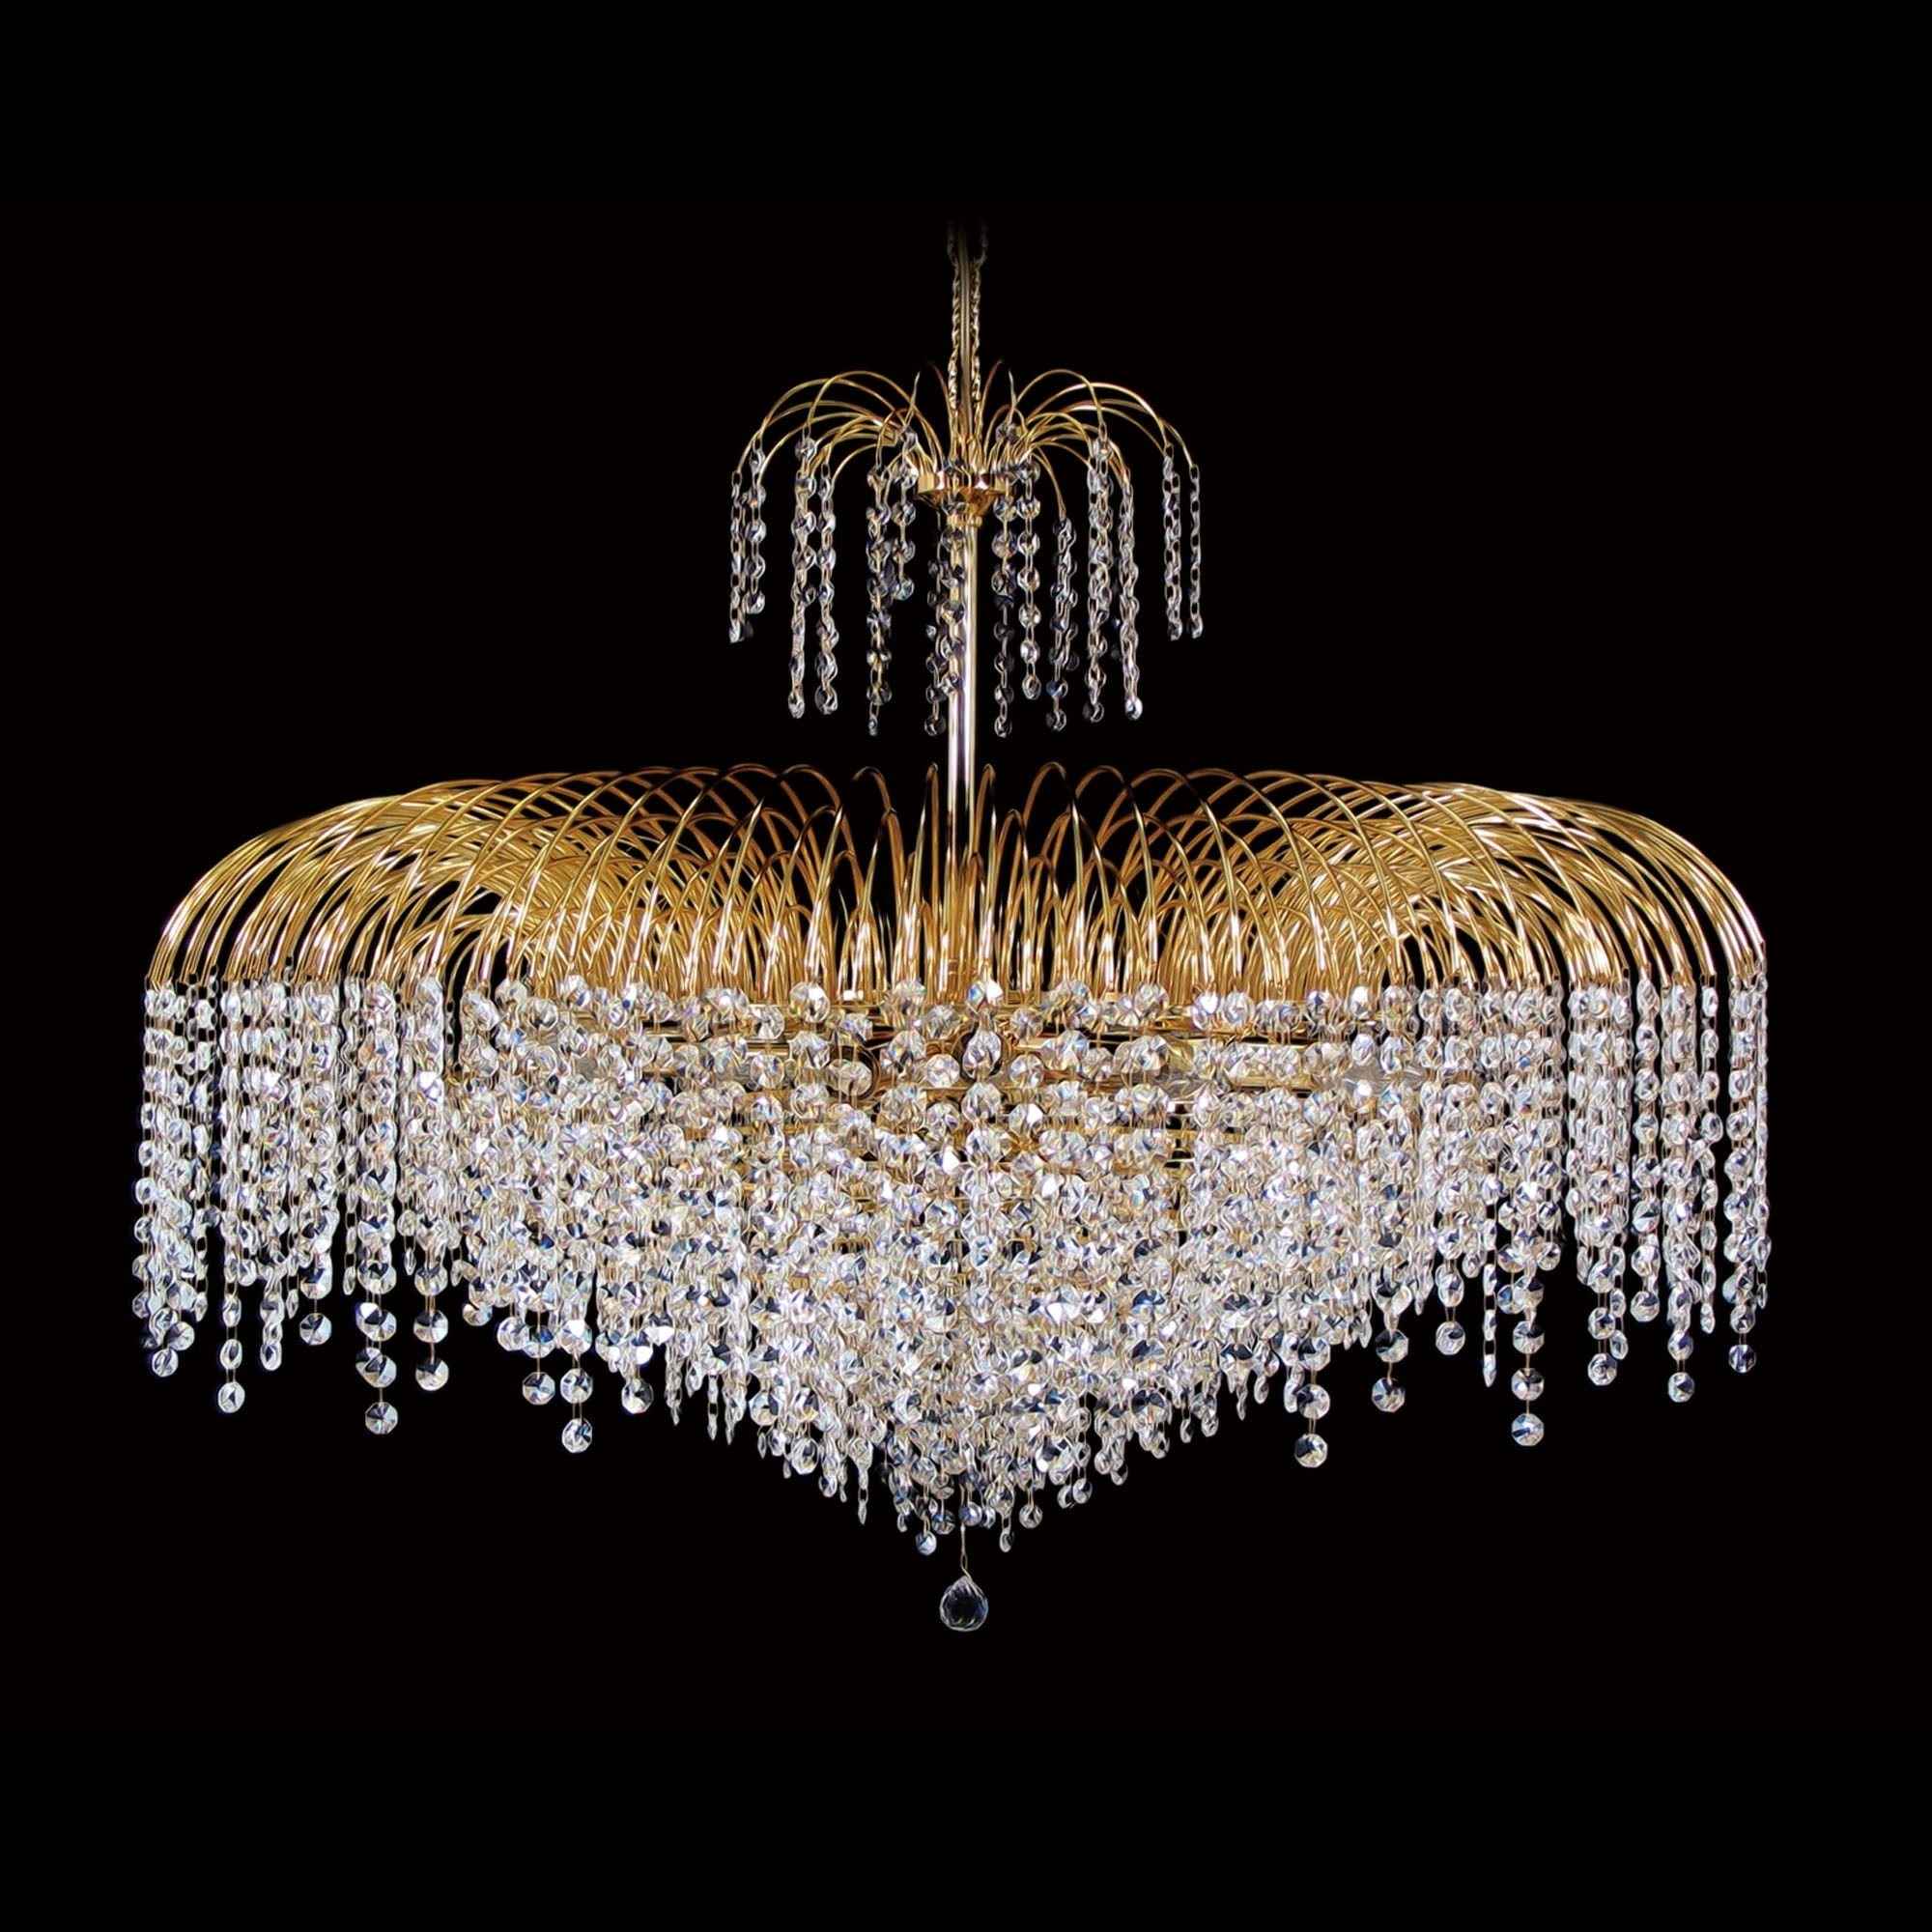 """15 Light – 32"""" Asfour Lead Crystal 24Ct Gold Plated Waterfall Throughout 2017 Crystal Waterfall Chandelier (View 1 of 15)"""